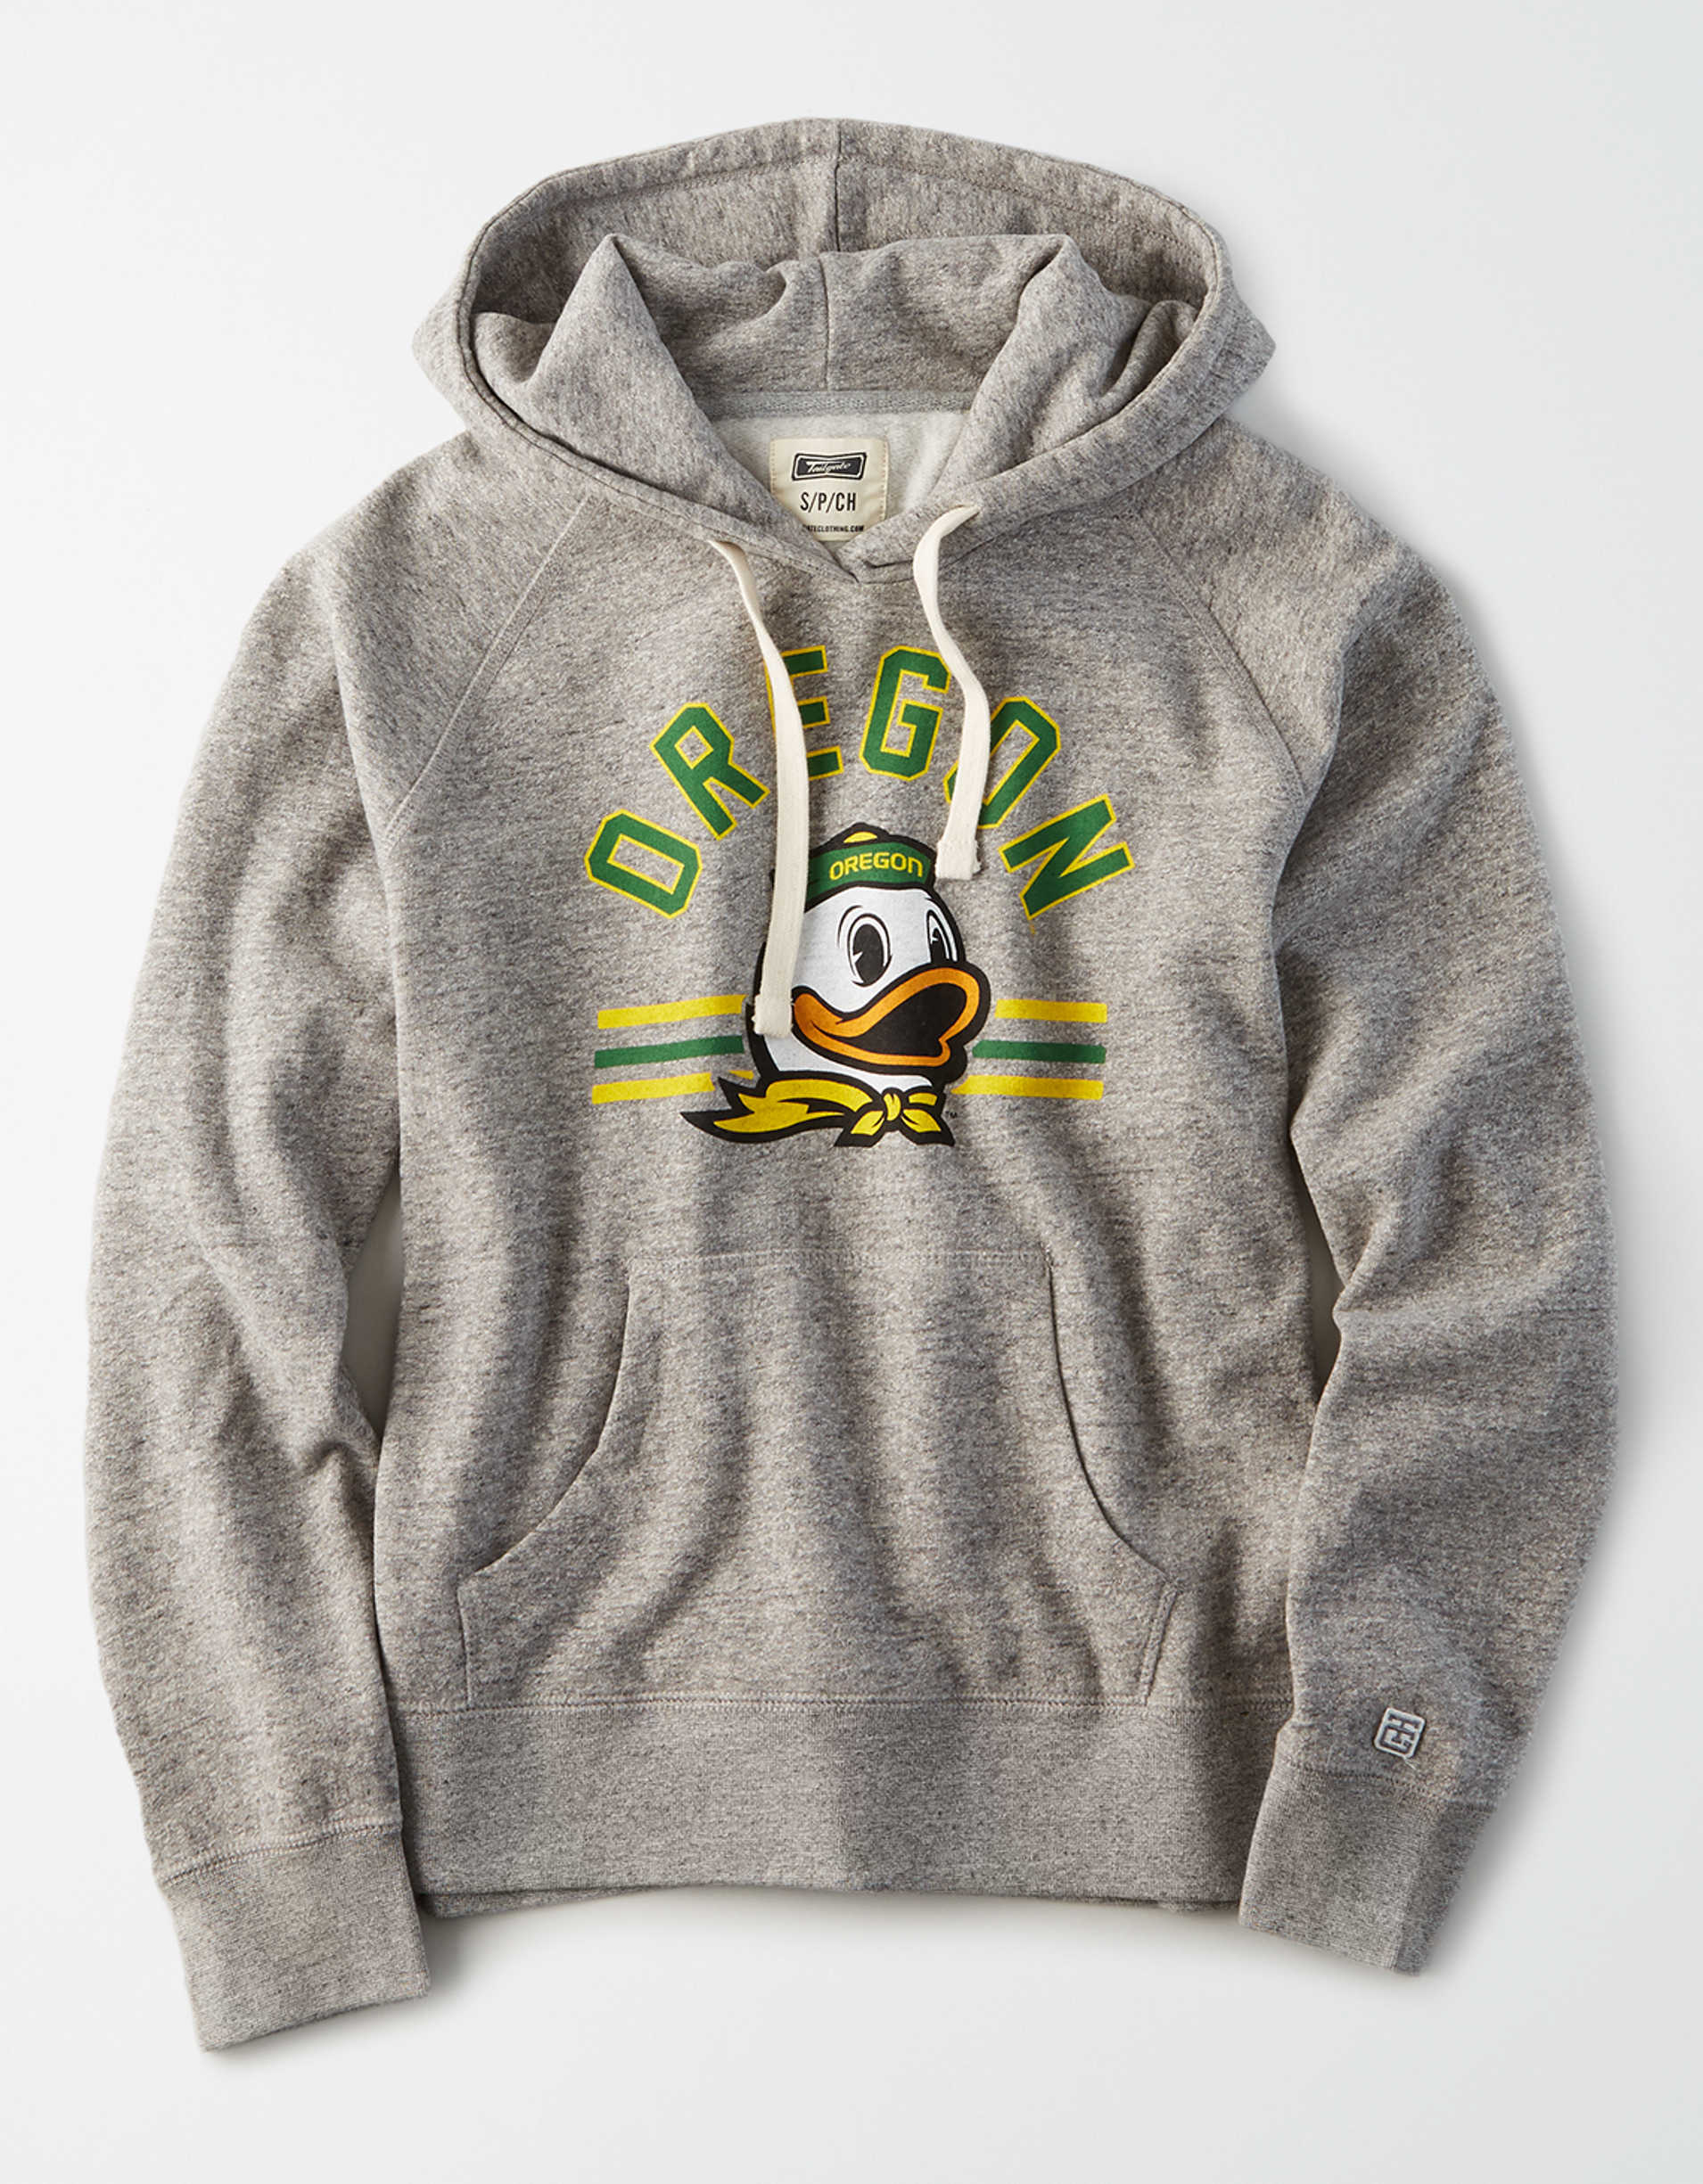 Tailgate Women's Oregon Ducks Fleece Hoodie